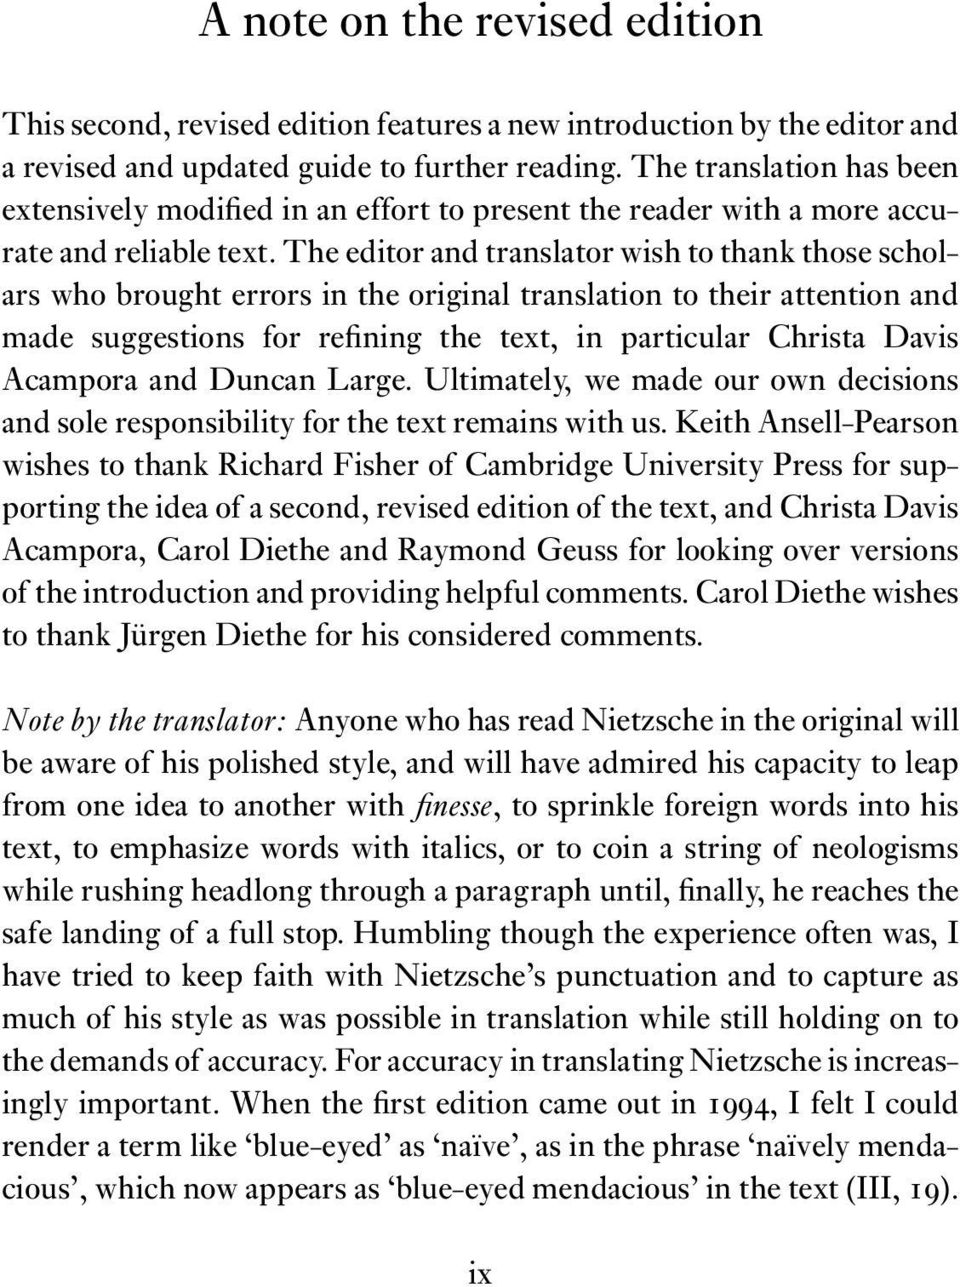 The editor and translator wish to thank those scholars who brought errors in the original translation to their attention and made suggestions for refining the text, in particular Christa Davis